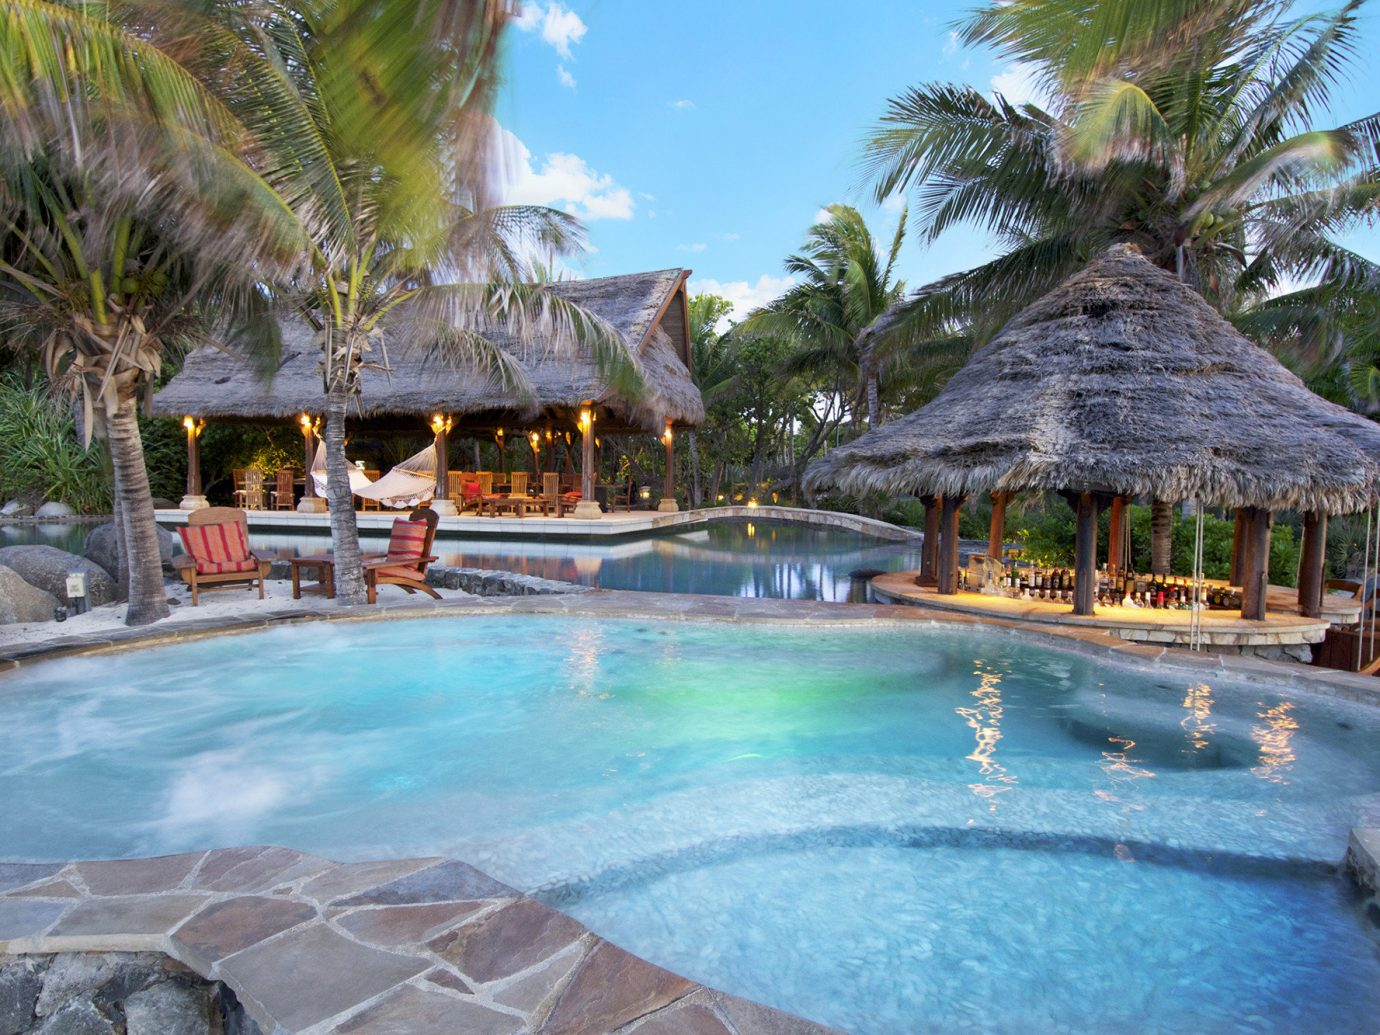 Trip Ideas tree outdoor Resort swimming pool leisure resort town water palm tree arecales vacation real estate estate tropics tourism Pool hacienda Villa caribbean Lagoon hotel stone swimming surrounded